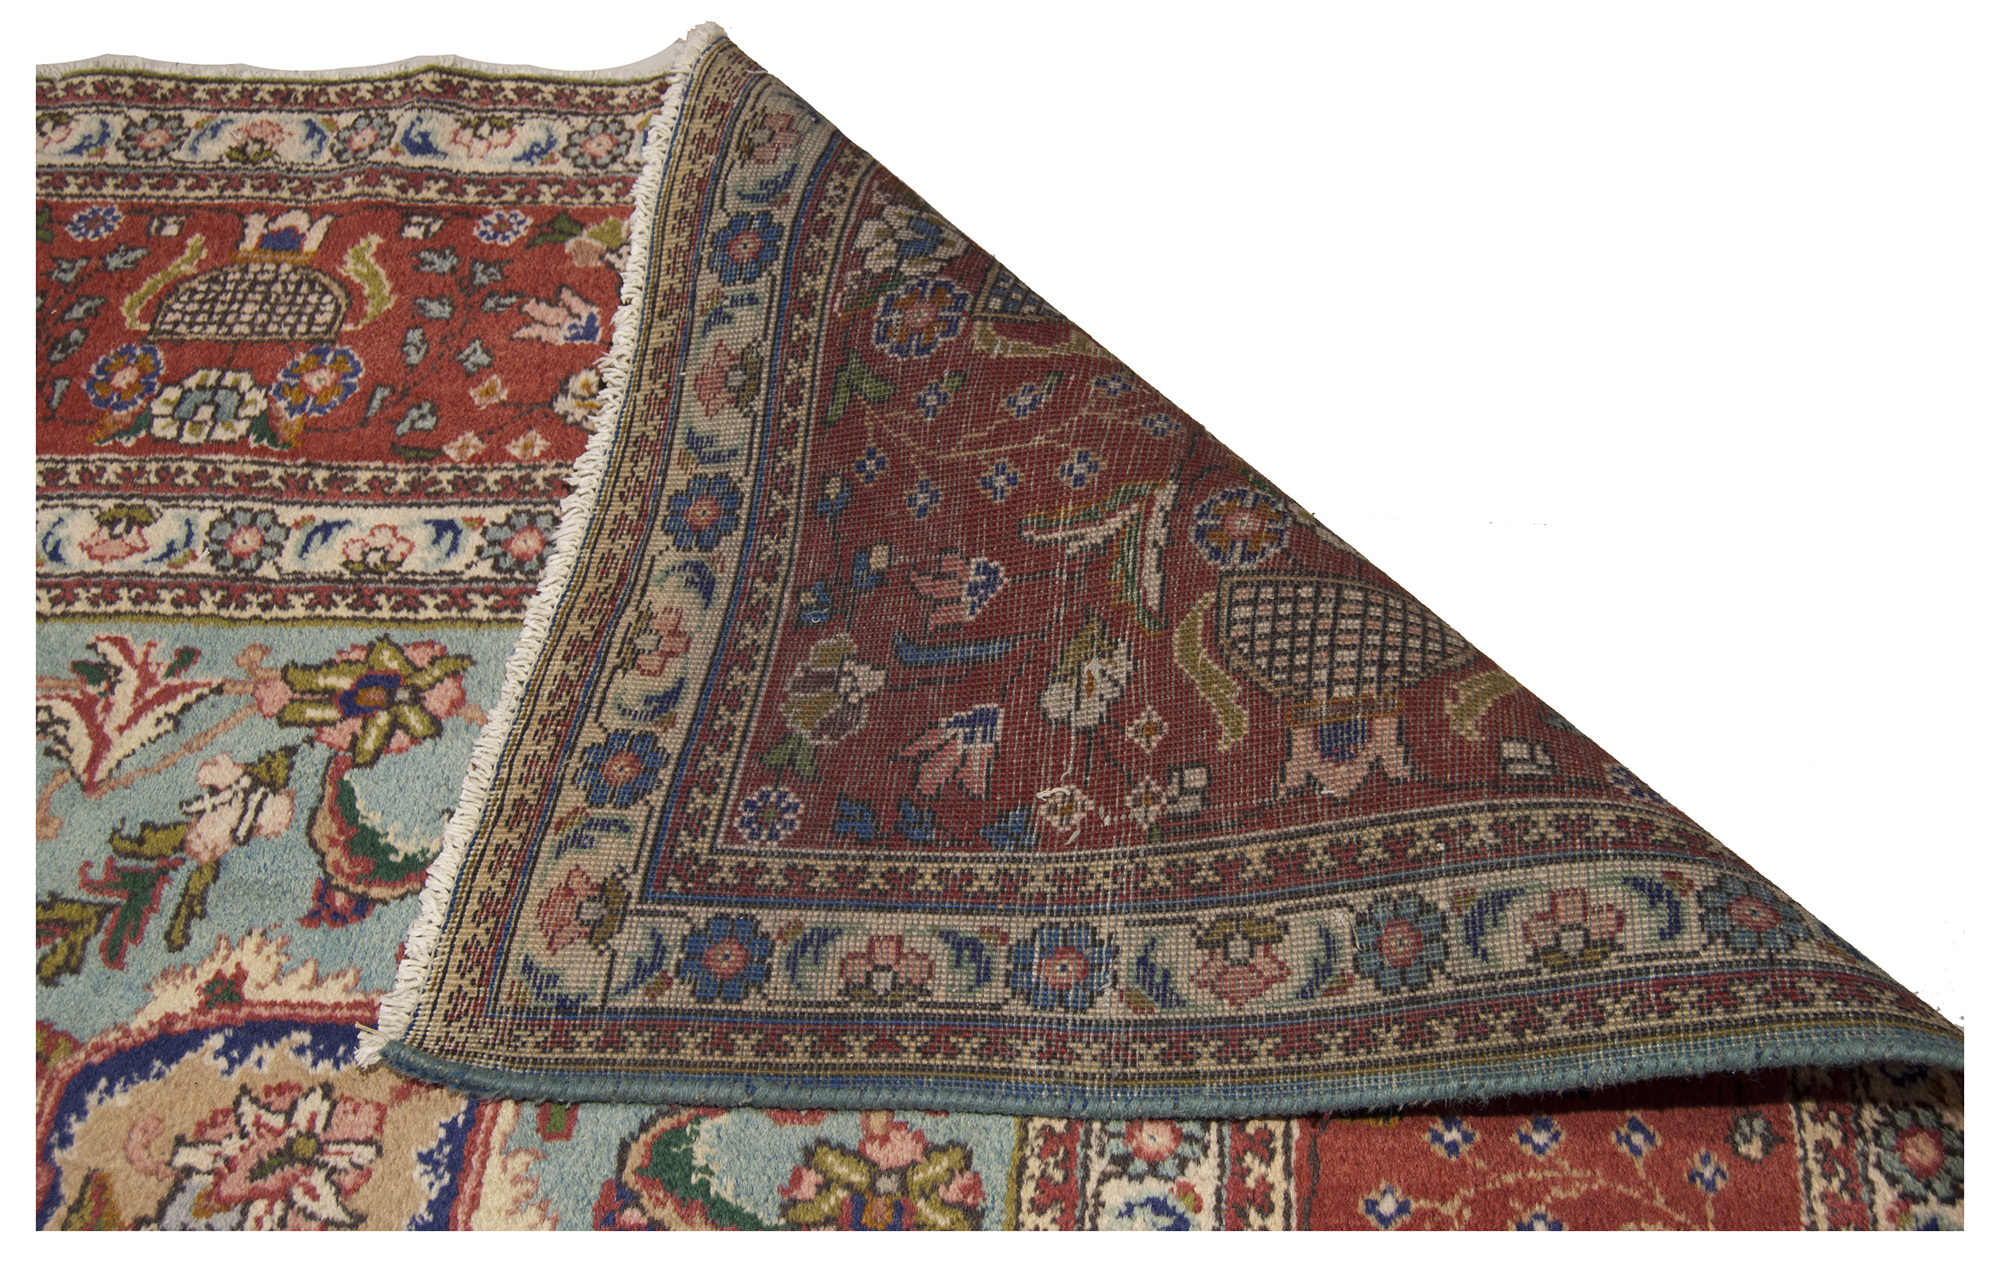 384×294 CM Tappeto Carpet Tapis Teppich Alfombra Rug (Hand